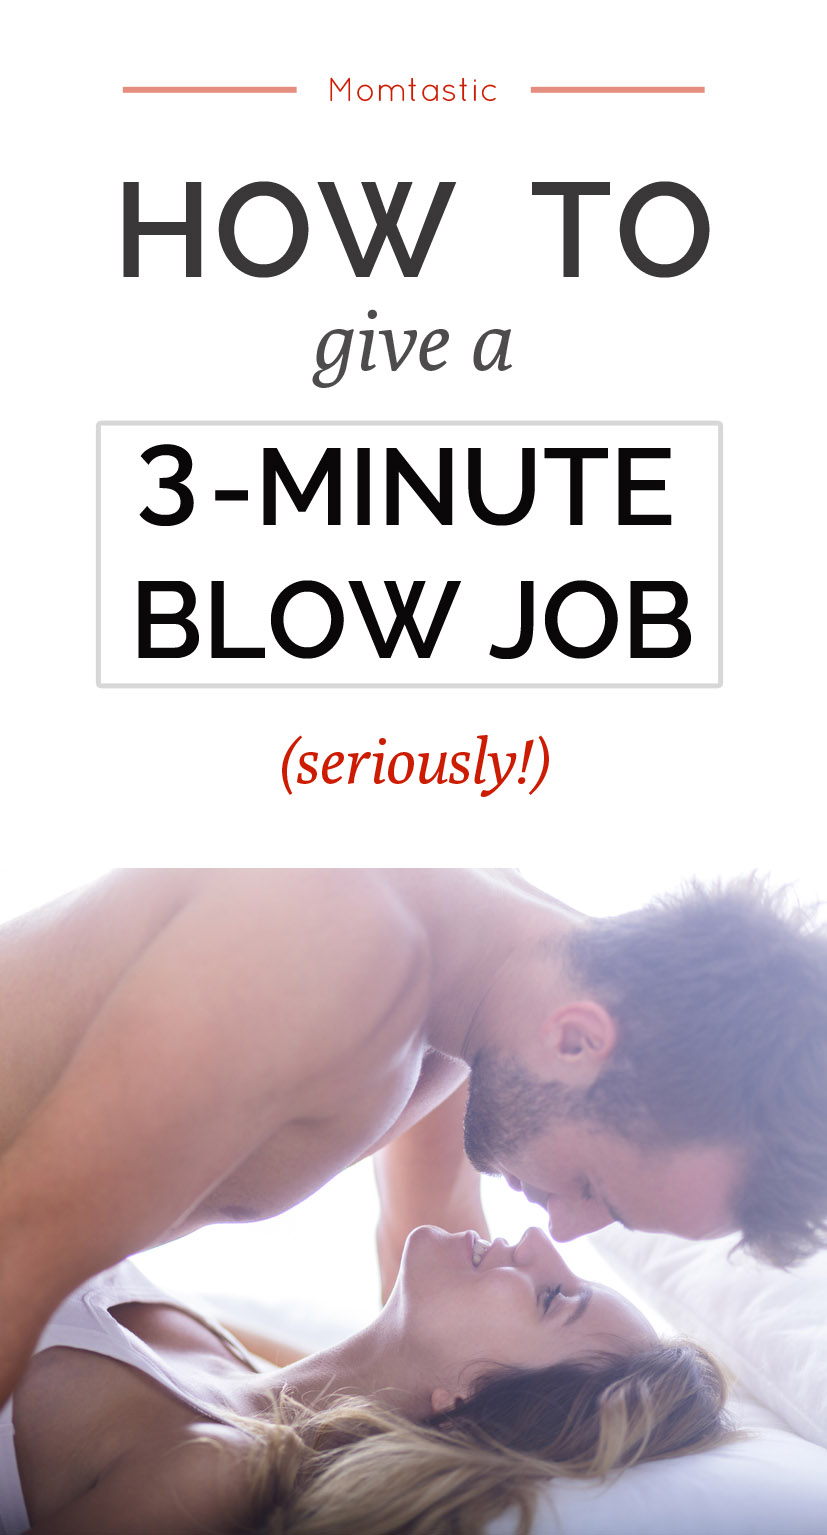 How_to_give_a_3_min_blow_job